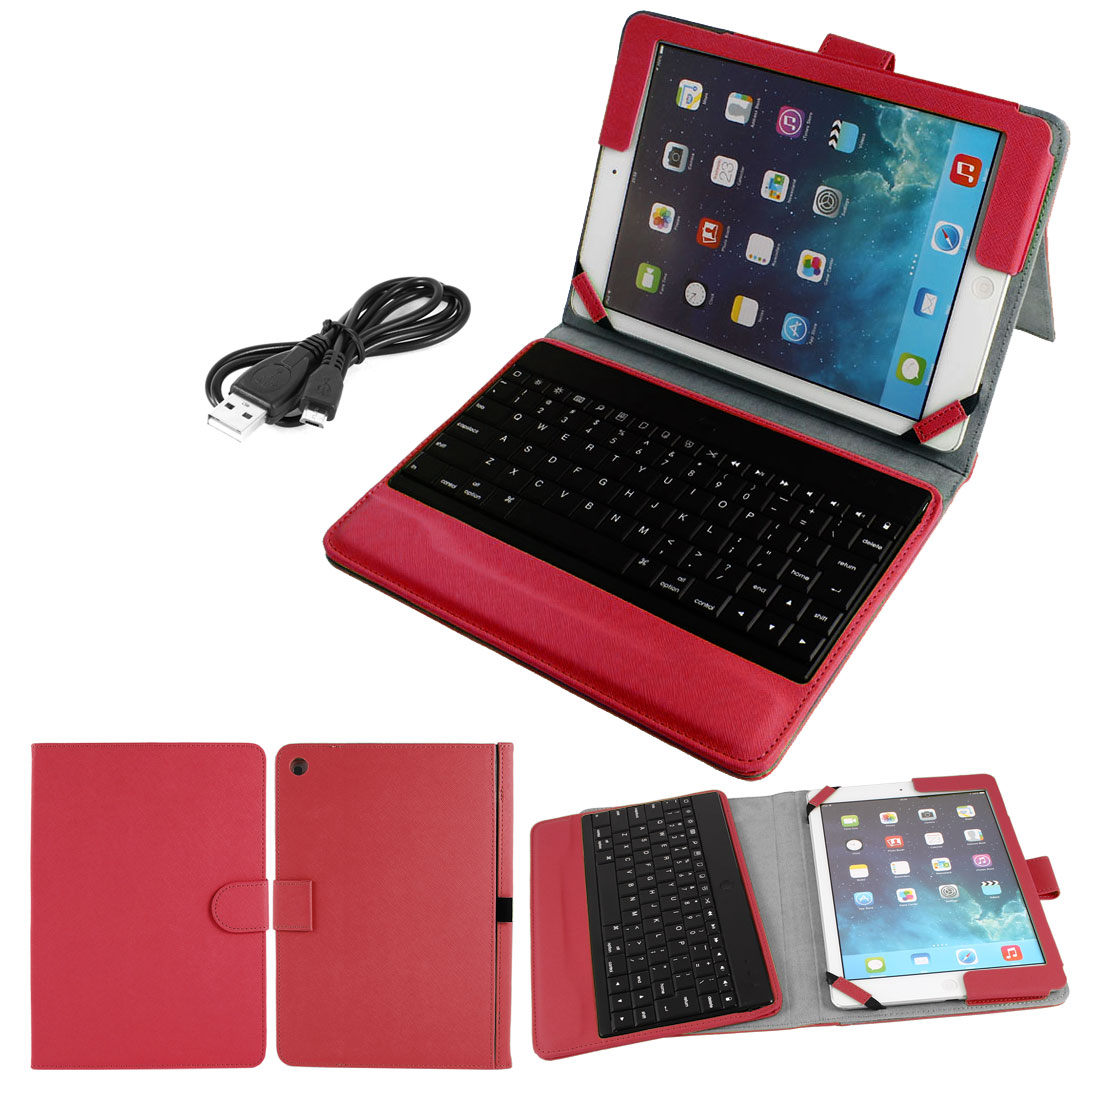 bluetooth Keyboard Foldable PU Leather Case Stand Protector Red for iPad 2 3 4